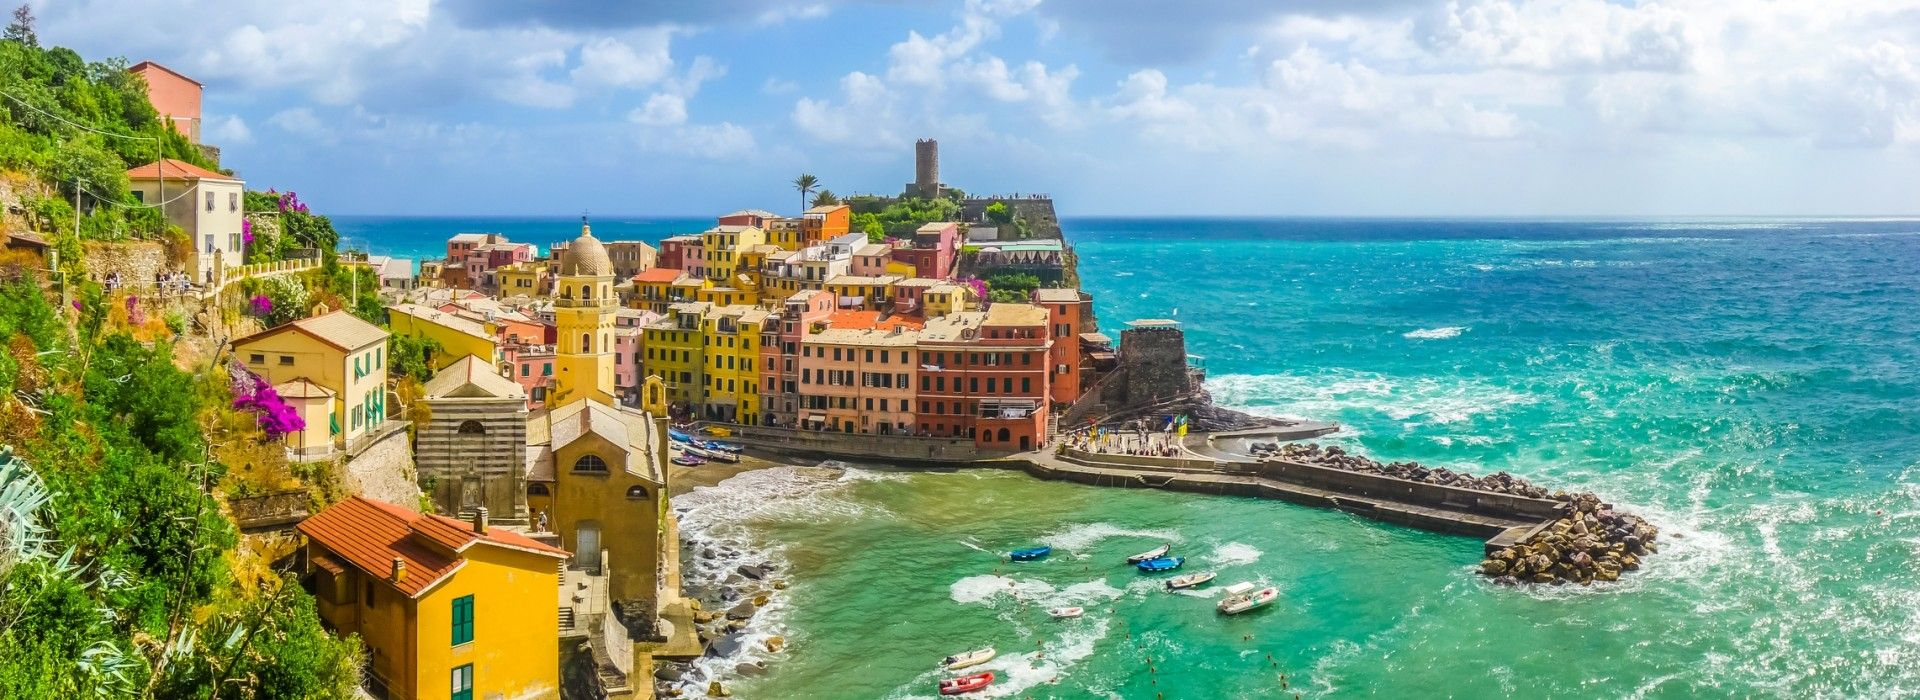 Wildlife, landscapes and nature Tours in Italy